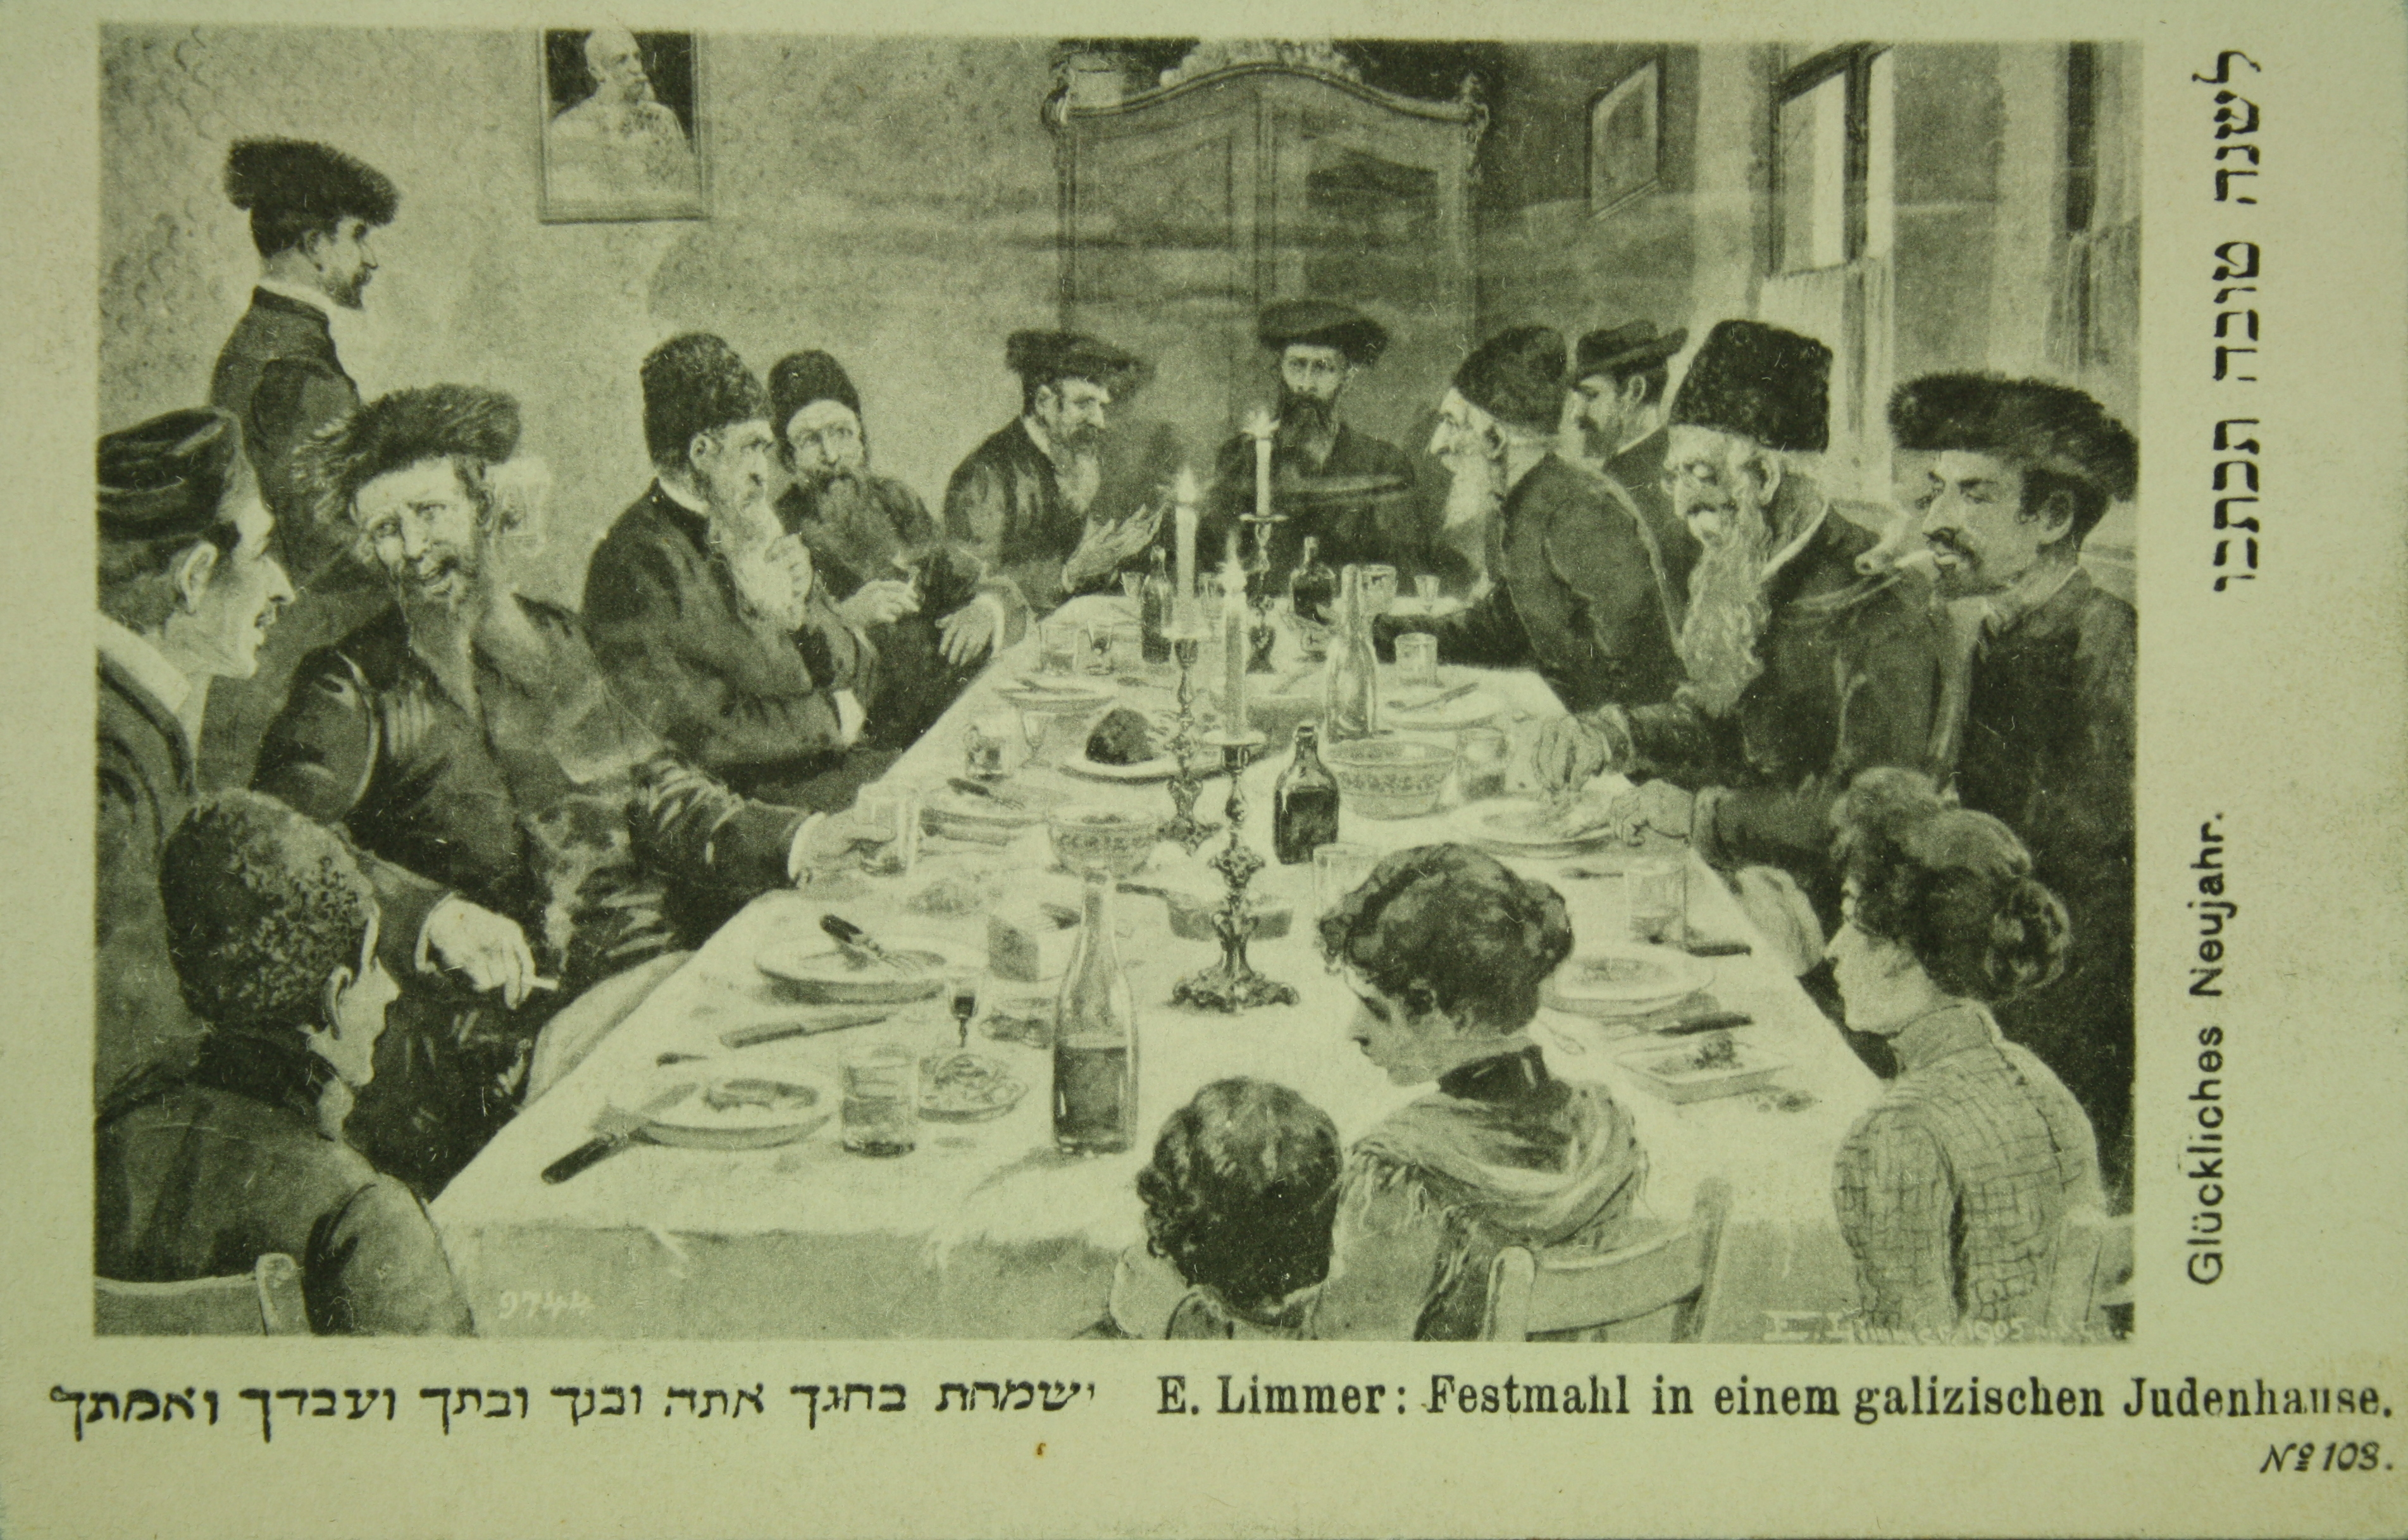 http://upload.wikimedia.org/wikipedia/commons/e/ec/The_National_Library_of_Israel%2C_Jewish_New_Year_cards_C_SH_039.JPG?uselang=de